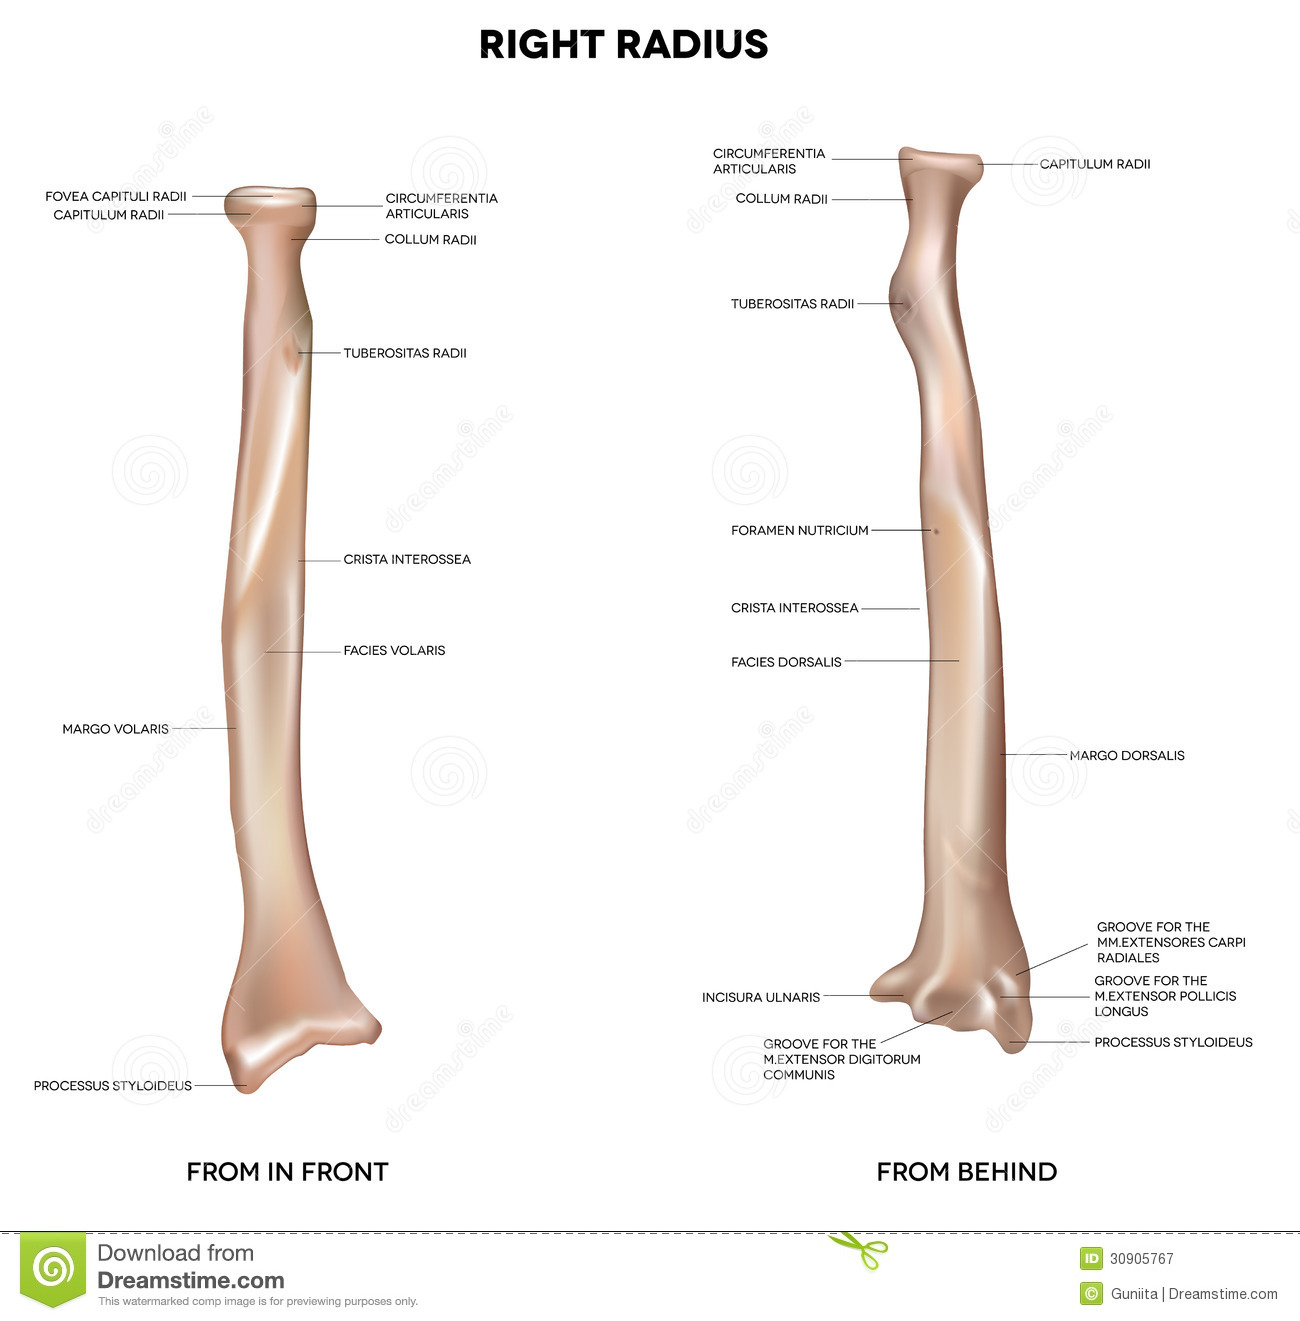 radius fibula diagram - wiring diagrams